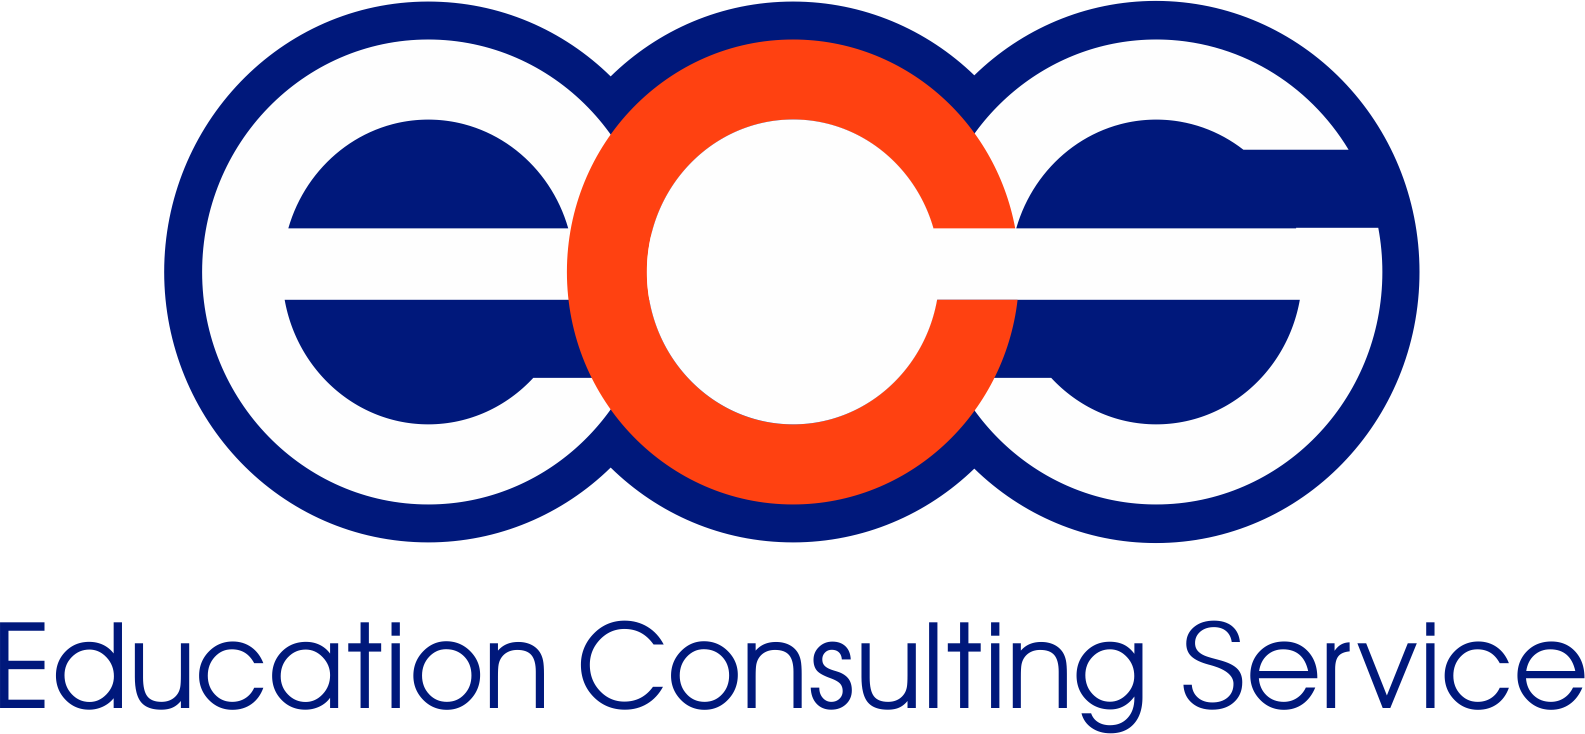 Education Consulting Service